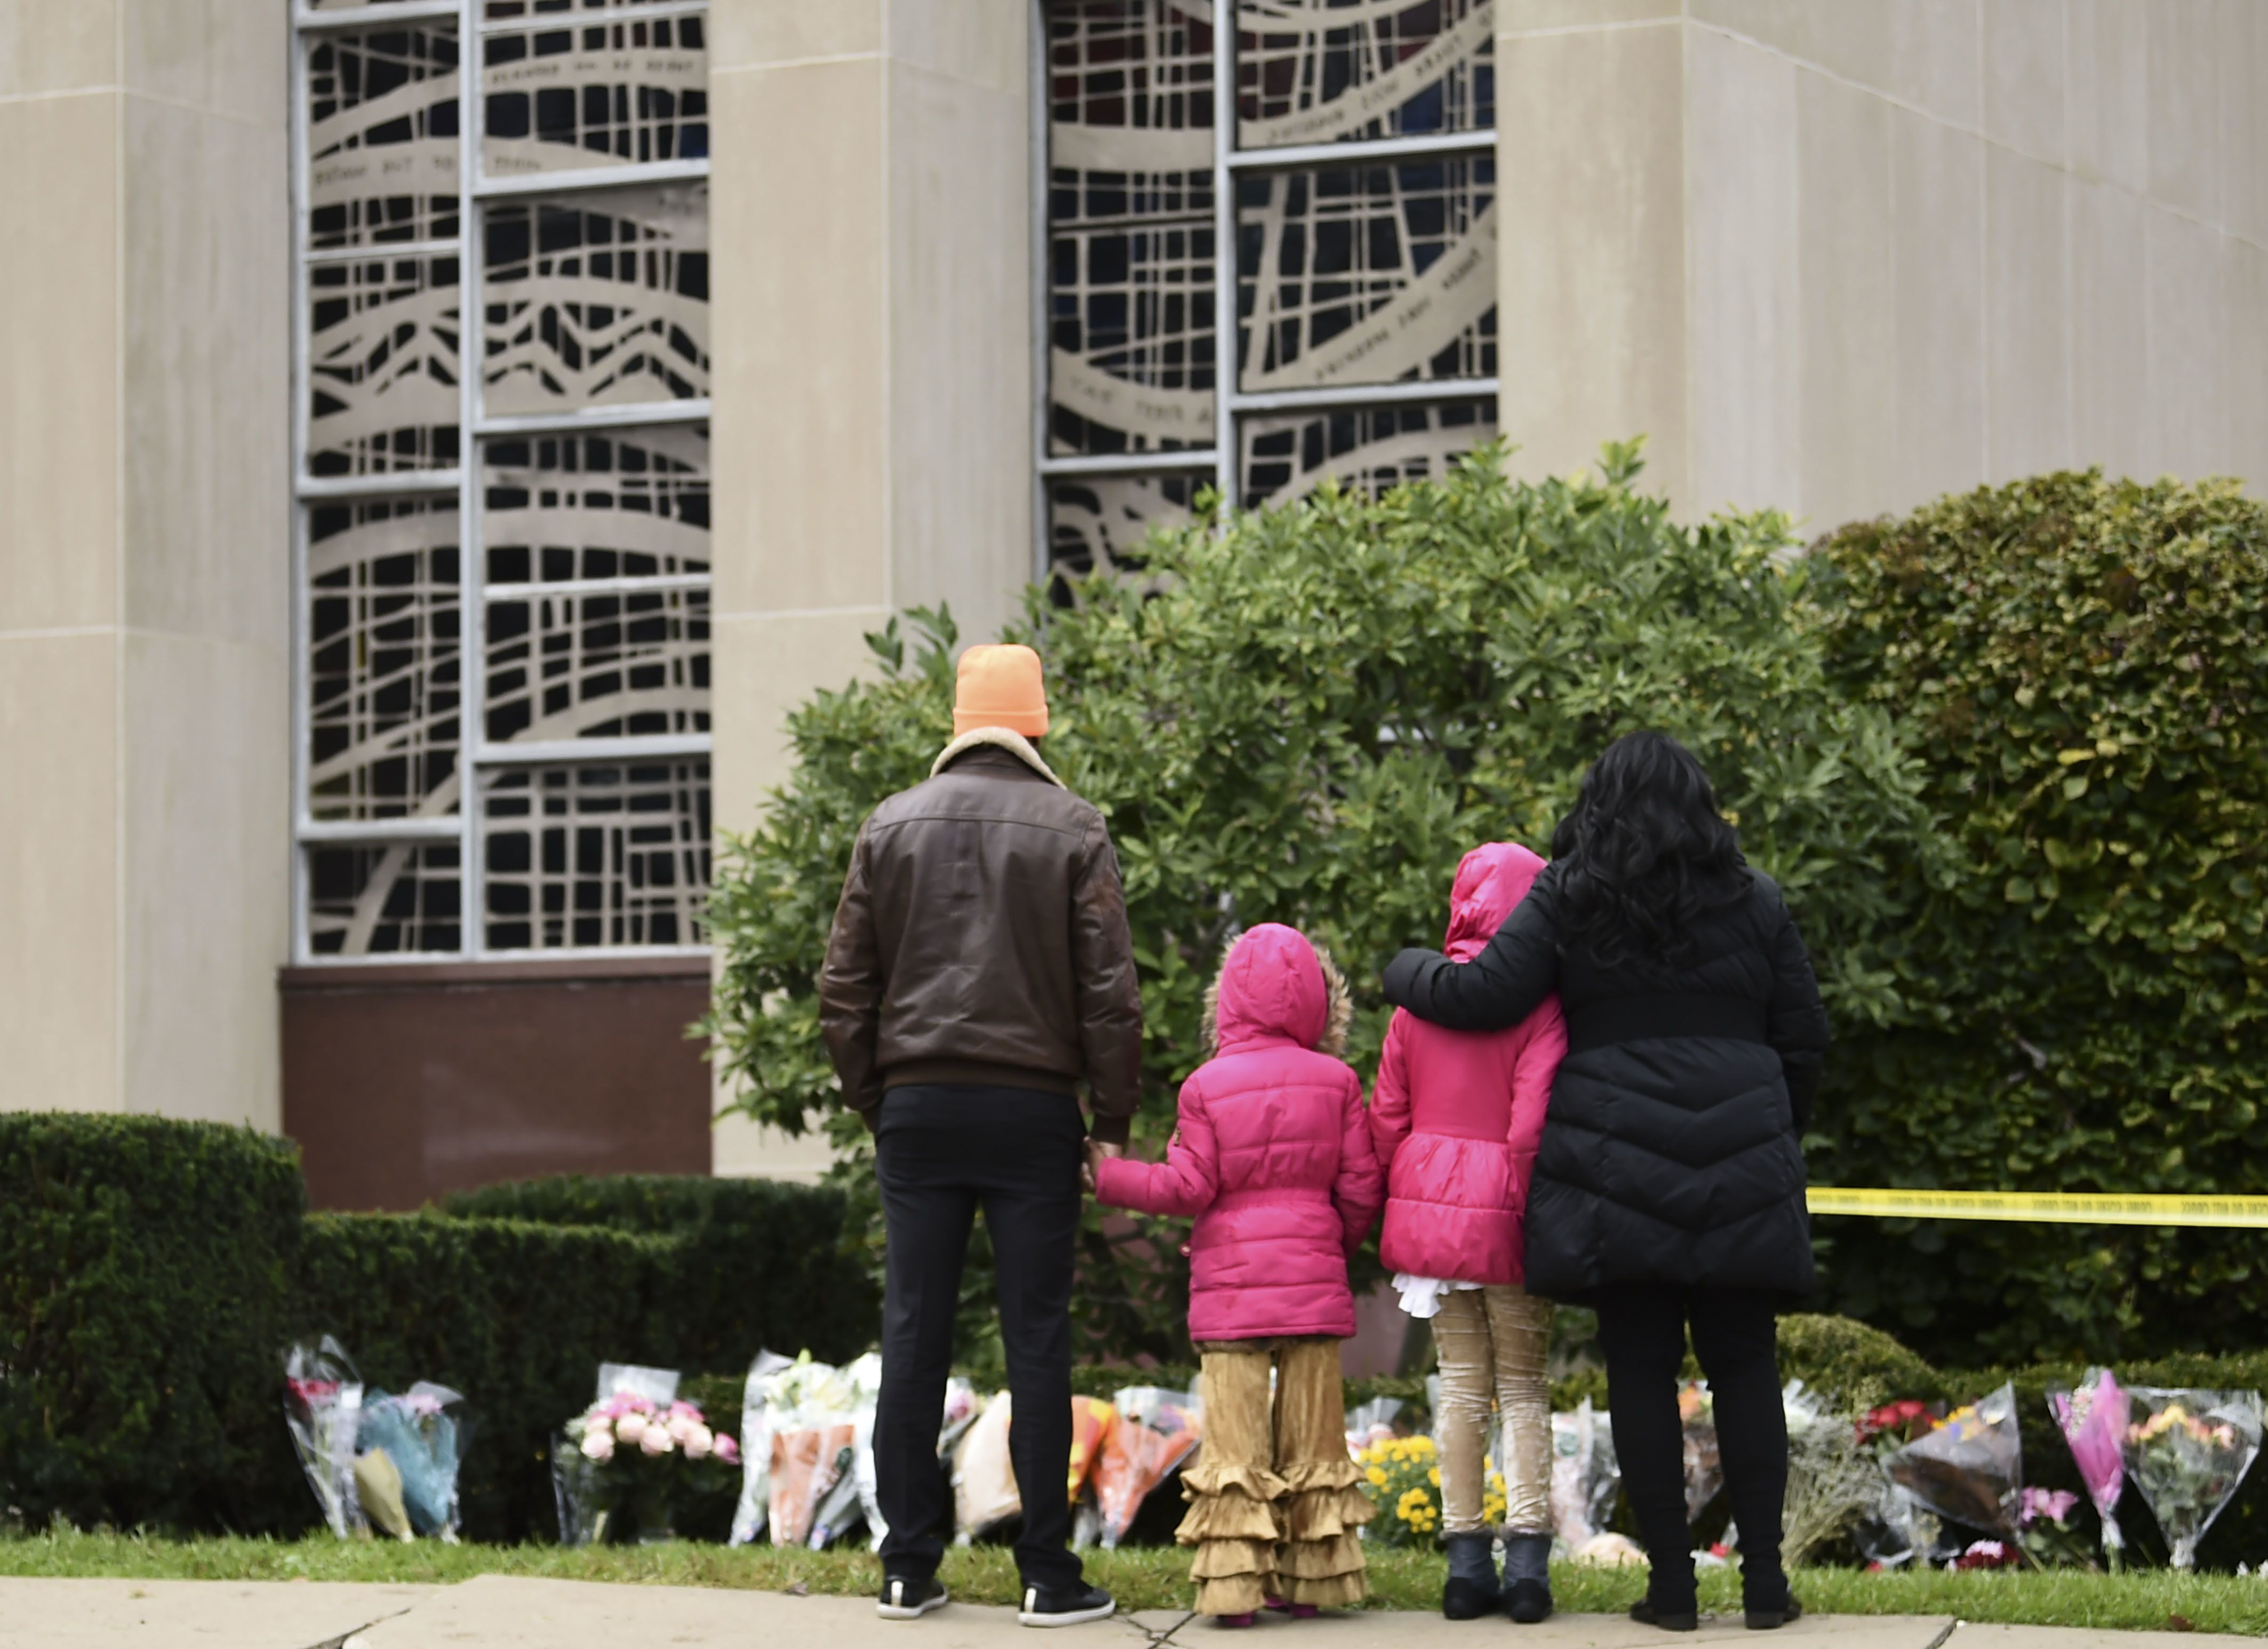 People stand in front of a memorial on October 28, 2018 outside of the Tree of Life Synagogue after a shooting there left 11 people dead in the Squirrel Hill neighborhood of Pittsburgh on October 27, 2018. - A man suspected of bursting into a Pittsburgh synagogue during a baby-naming ceremony and gunning down 11 people has been charged with murder, in the deadliest anti-Semitic attack in recent US history. The suspect -- identified as a 46-year-old Robert Bowers -- reportedly yelled 'All Jews must die' as he sprayed bullets into the Tree of Life synagogue during Sabbath services on Saturday before exchanging fire with police, in an attack that also wounded six people. (Photo by Brendan SMIALOWSKI / AFP)        (Photo credit should read BRENDAN SMIALOWSKI/AFP/Getty Images)